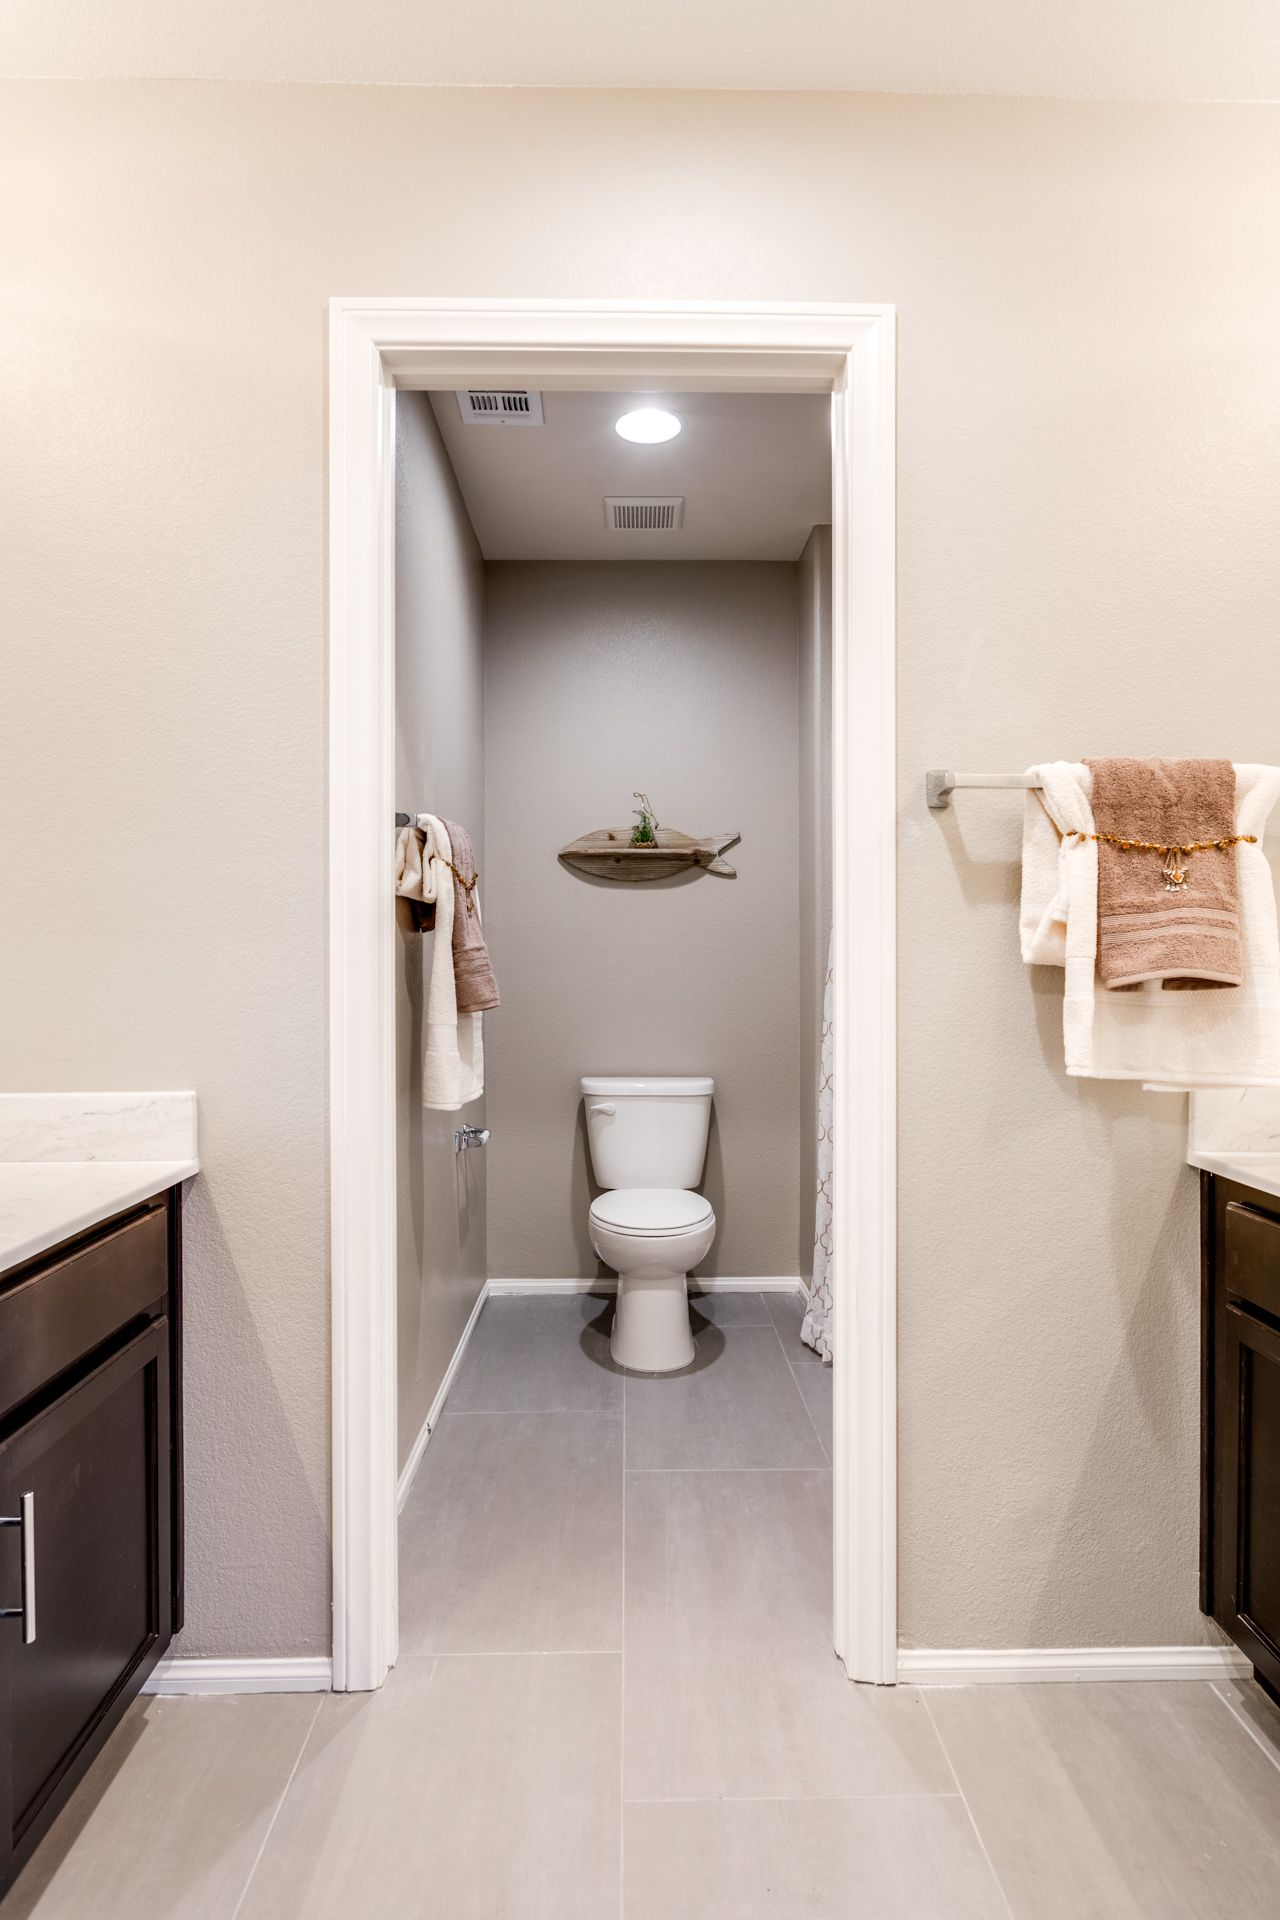 Bathroom featured in the Residence 2275 By Harmony Homes - Las Vegas in Las Vegas, NV